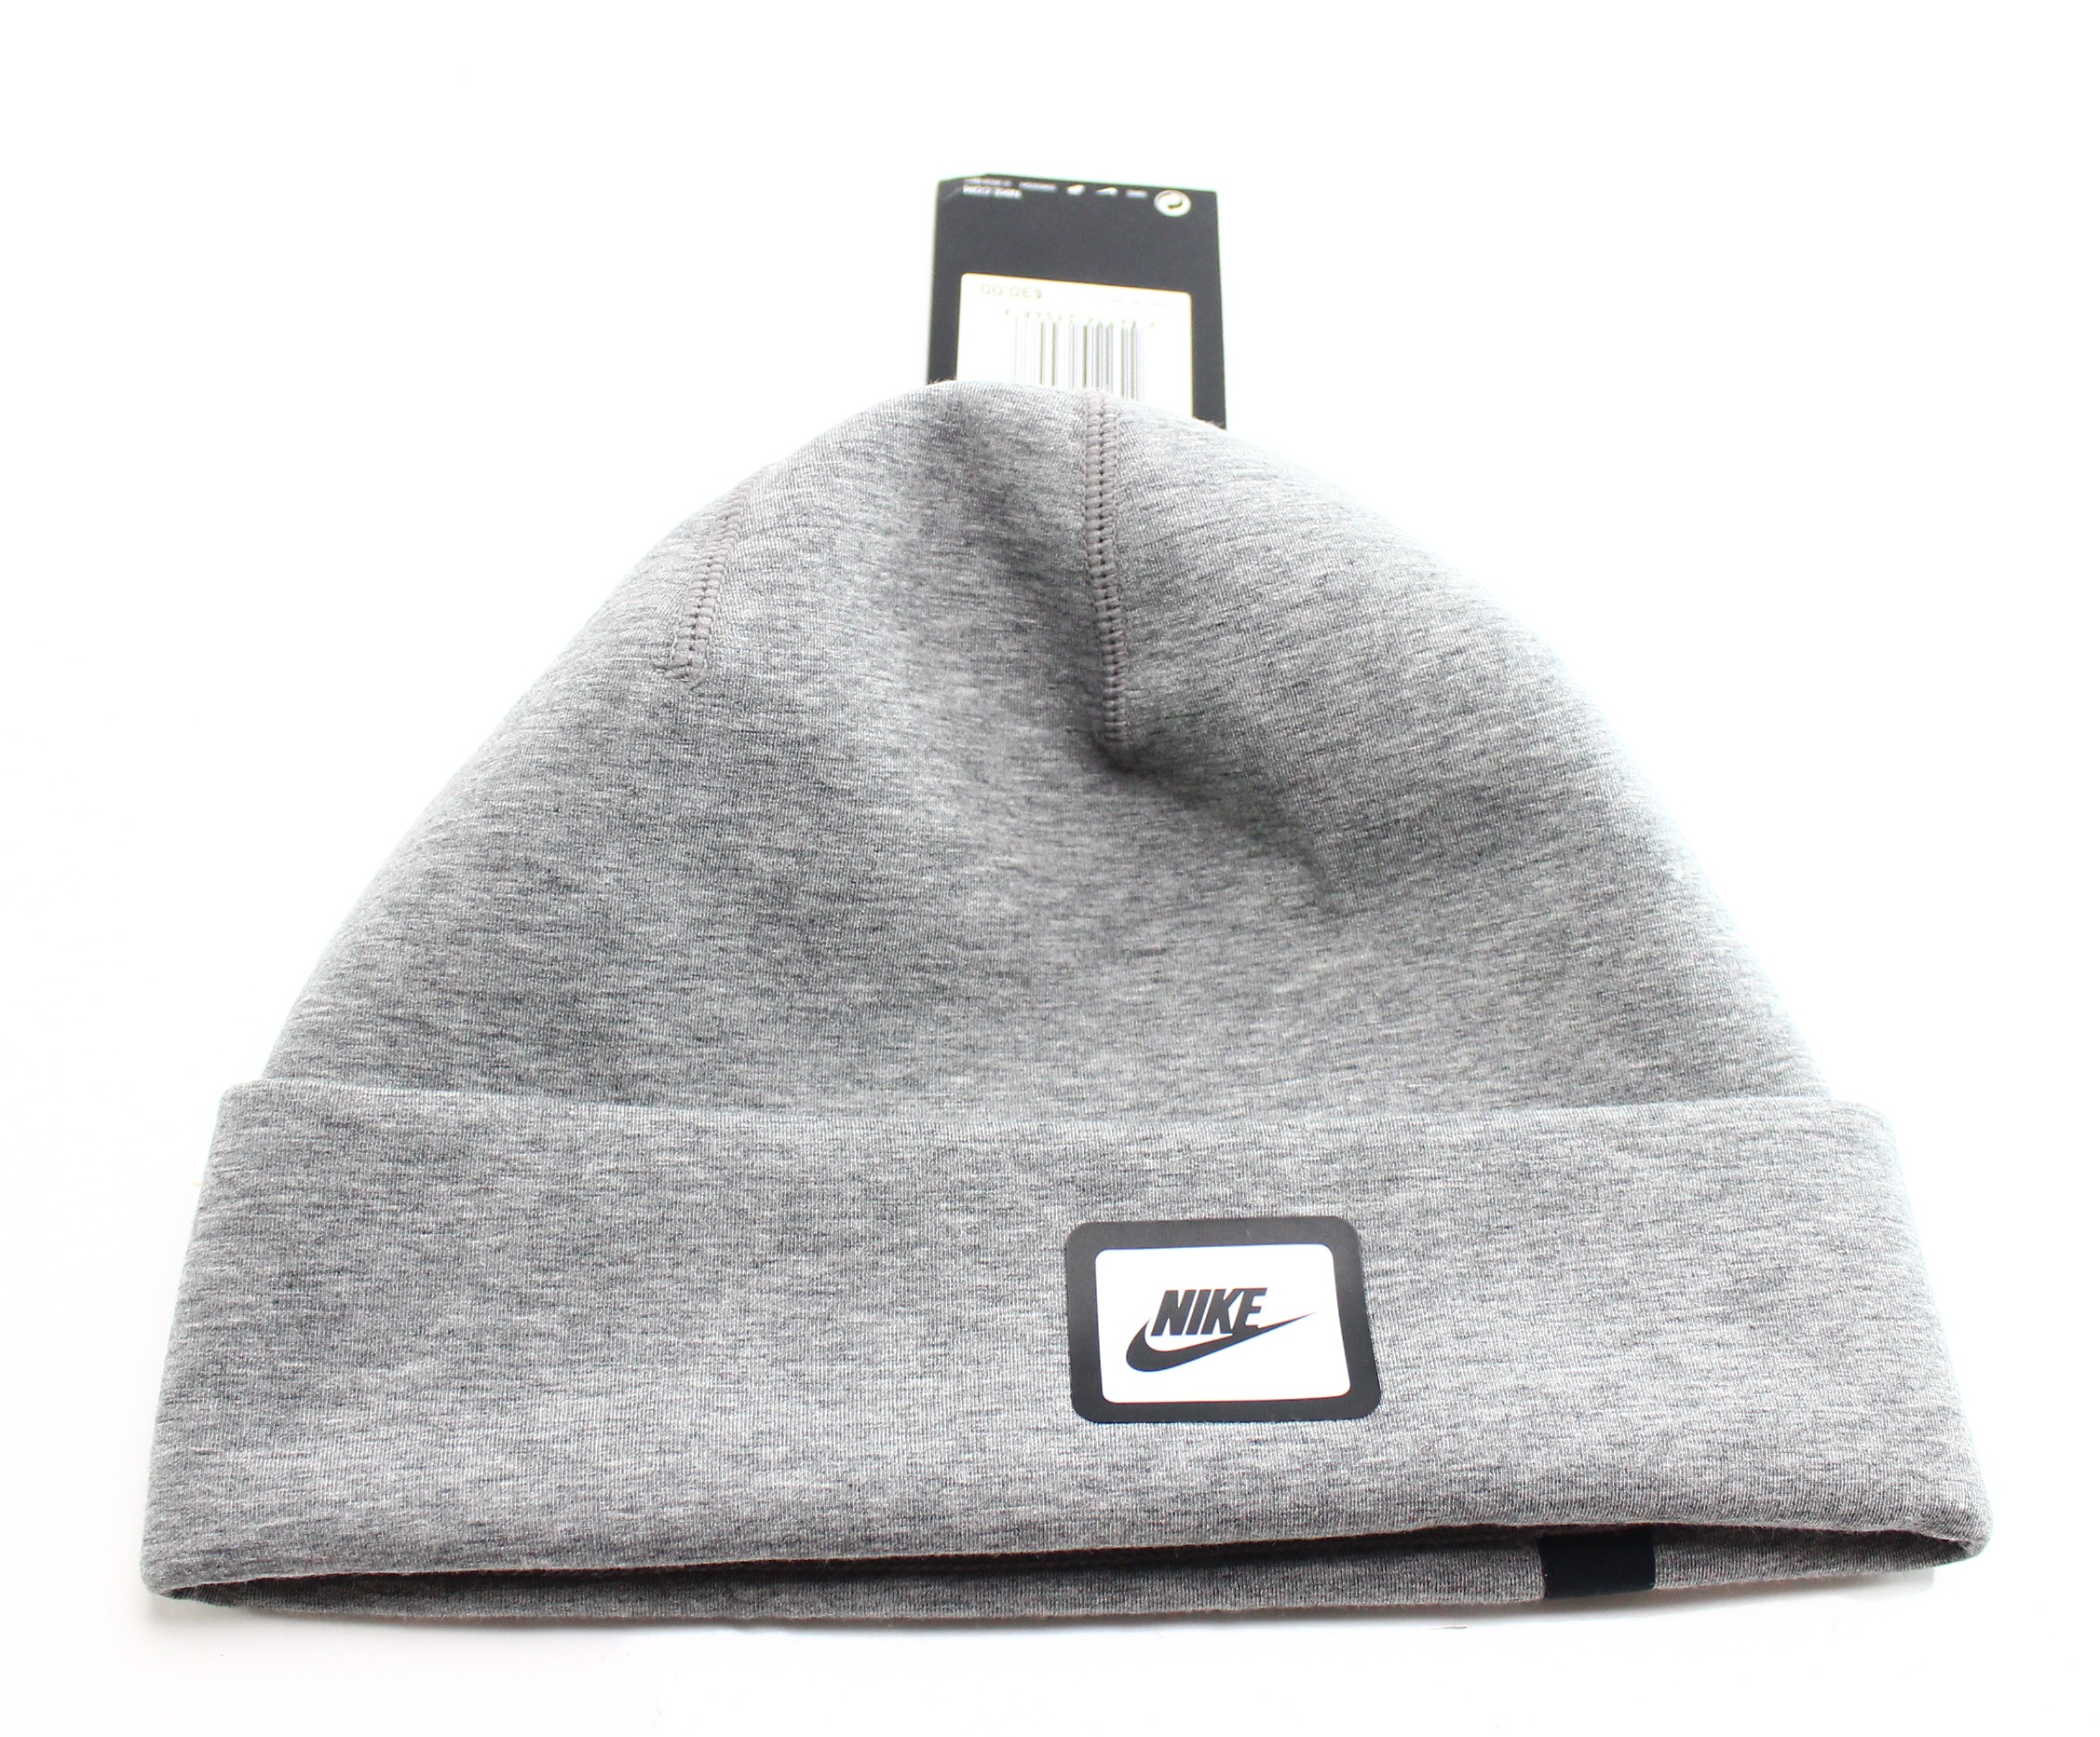 b21ad8a32 Details about Nike Gray Solid Classic Adult One US Size Cuffed Logo Polar  Beanie Cap $29 370